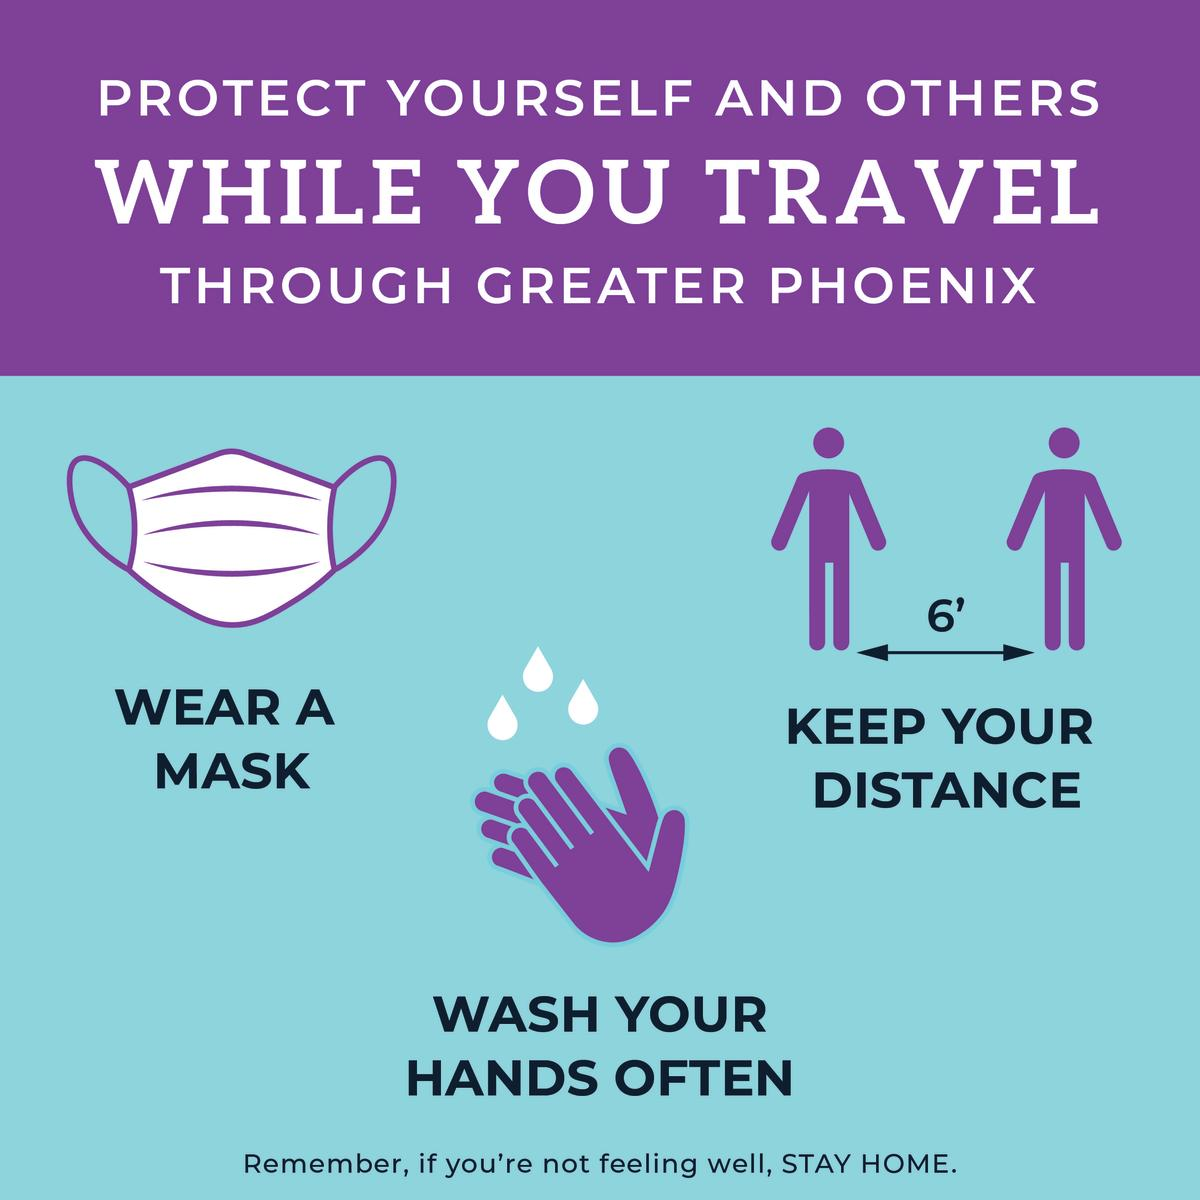 Protect yourself and others while you travel through Greater Phoenix: wear a mask, keep your distance, and wash your hands often.